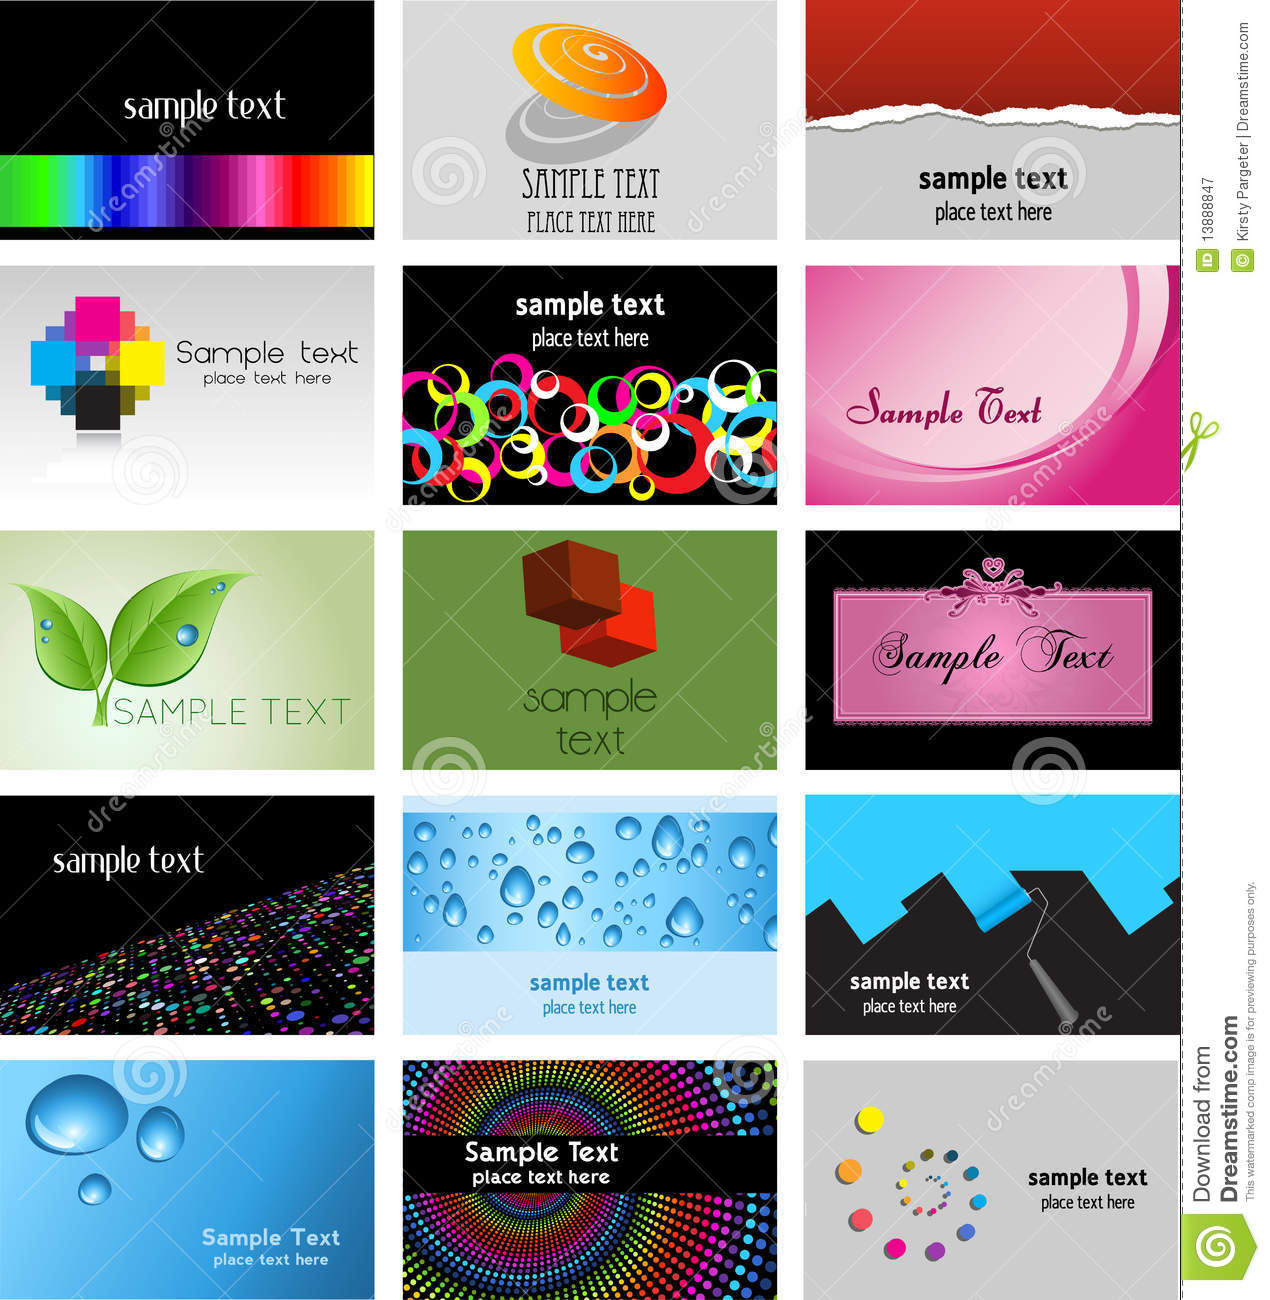 Free business card designs yeniscale free business card designs colourmoves